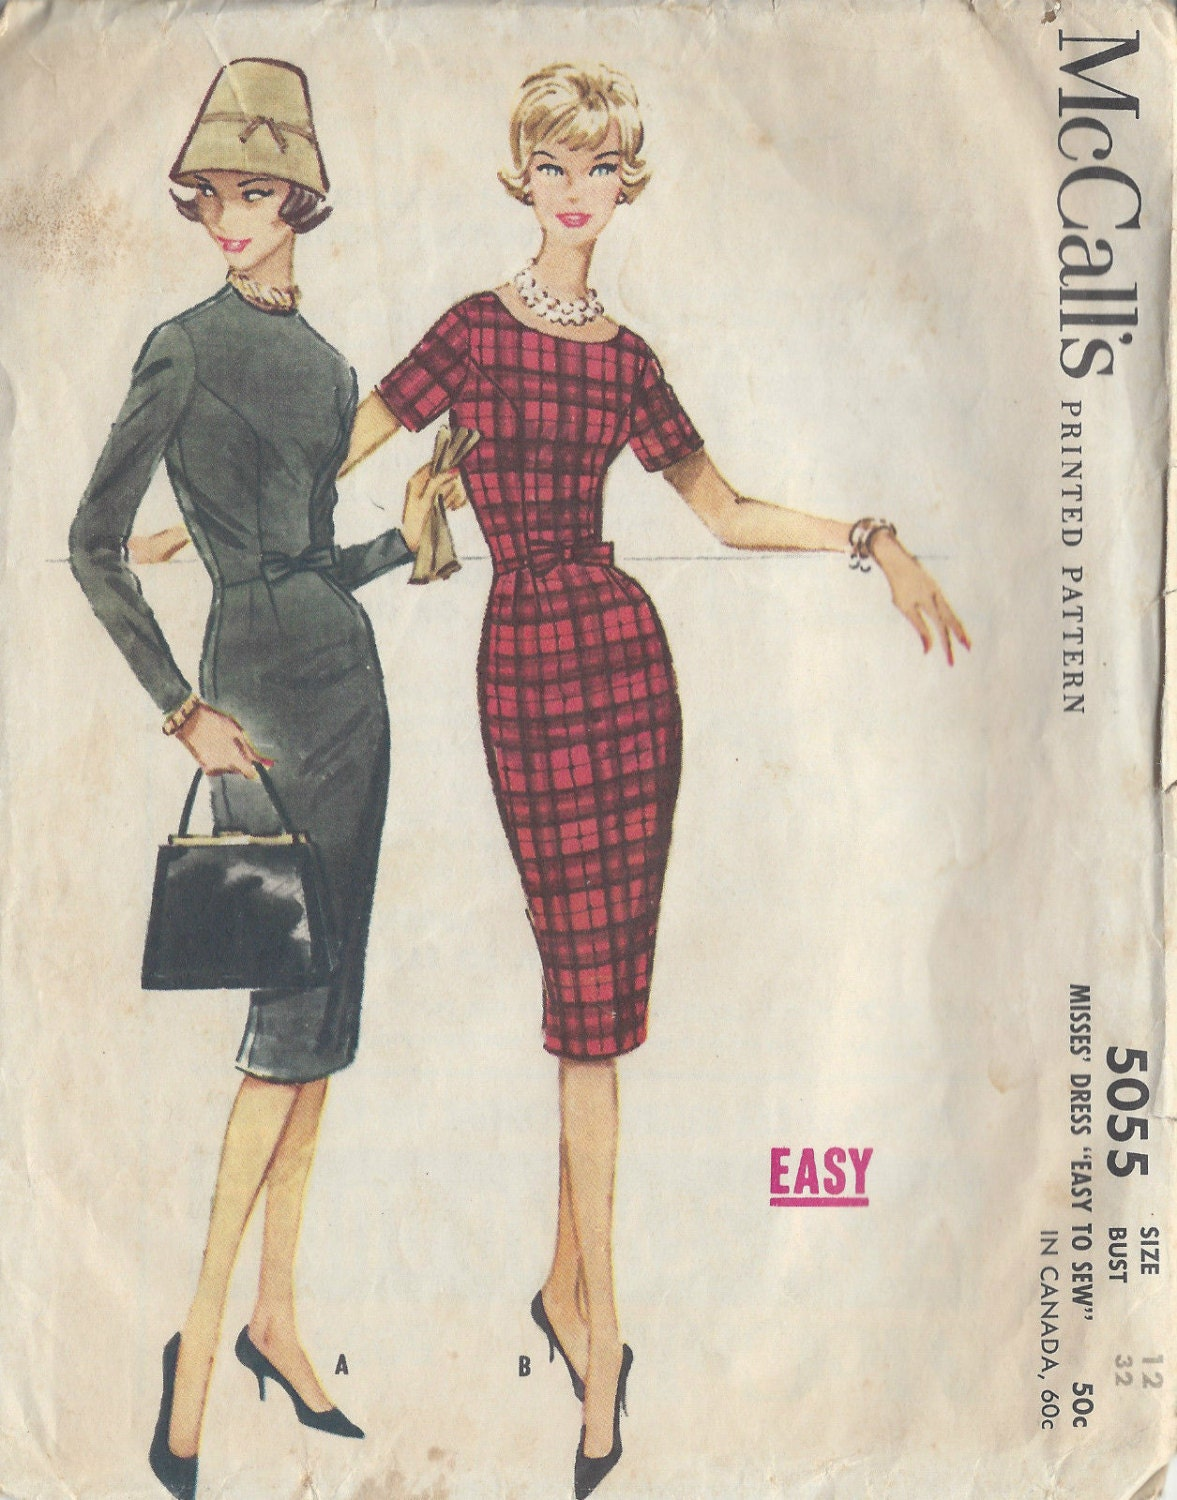 7015d2406a85 1959 Vintage Sewing Pattern B32 WIGGLE DRESS (R927) McCall's 5055 from  tvpstore on Etsy Studio